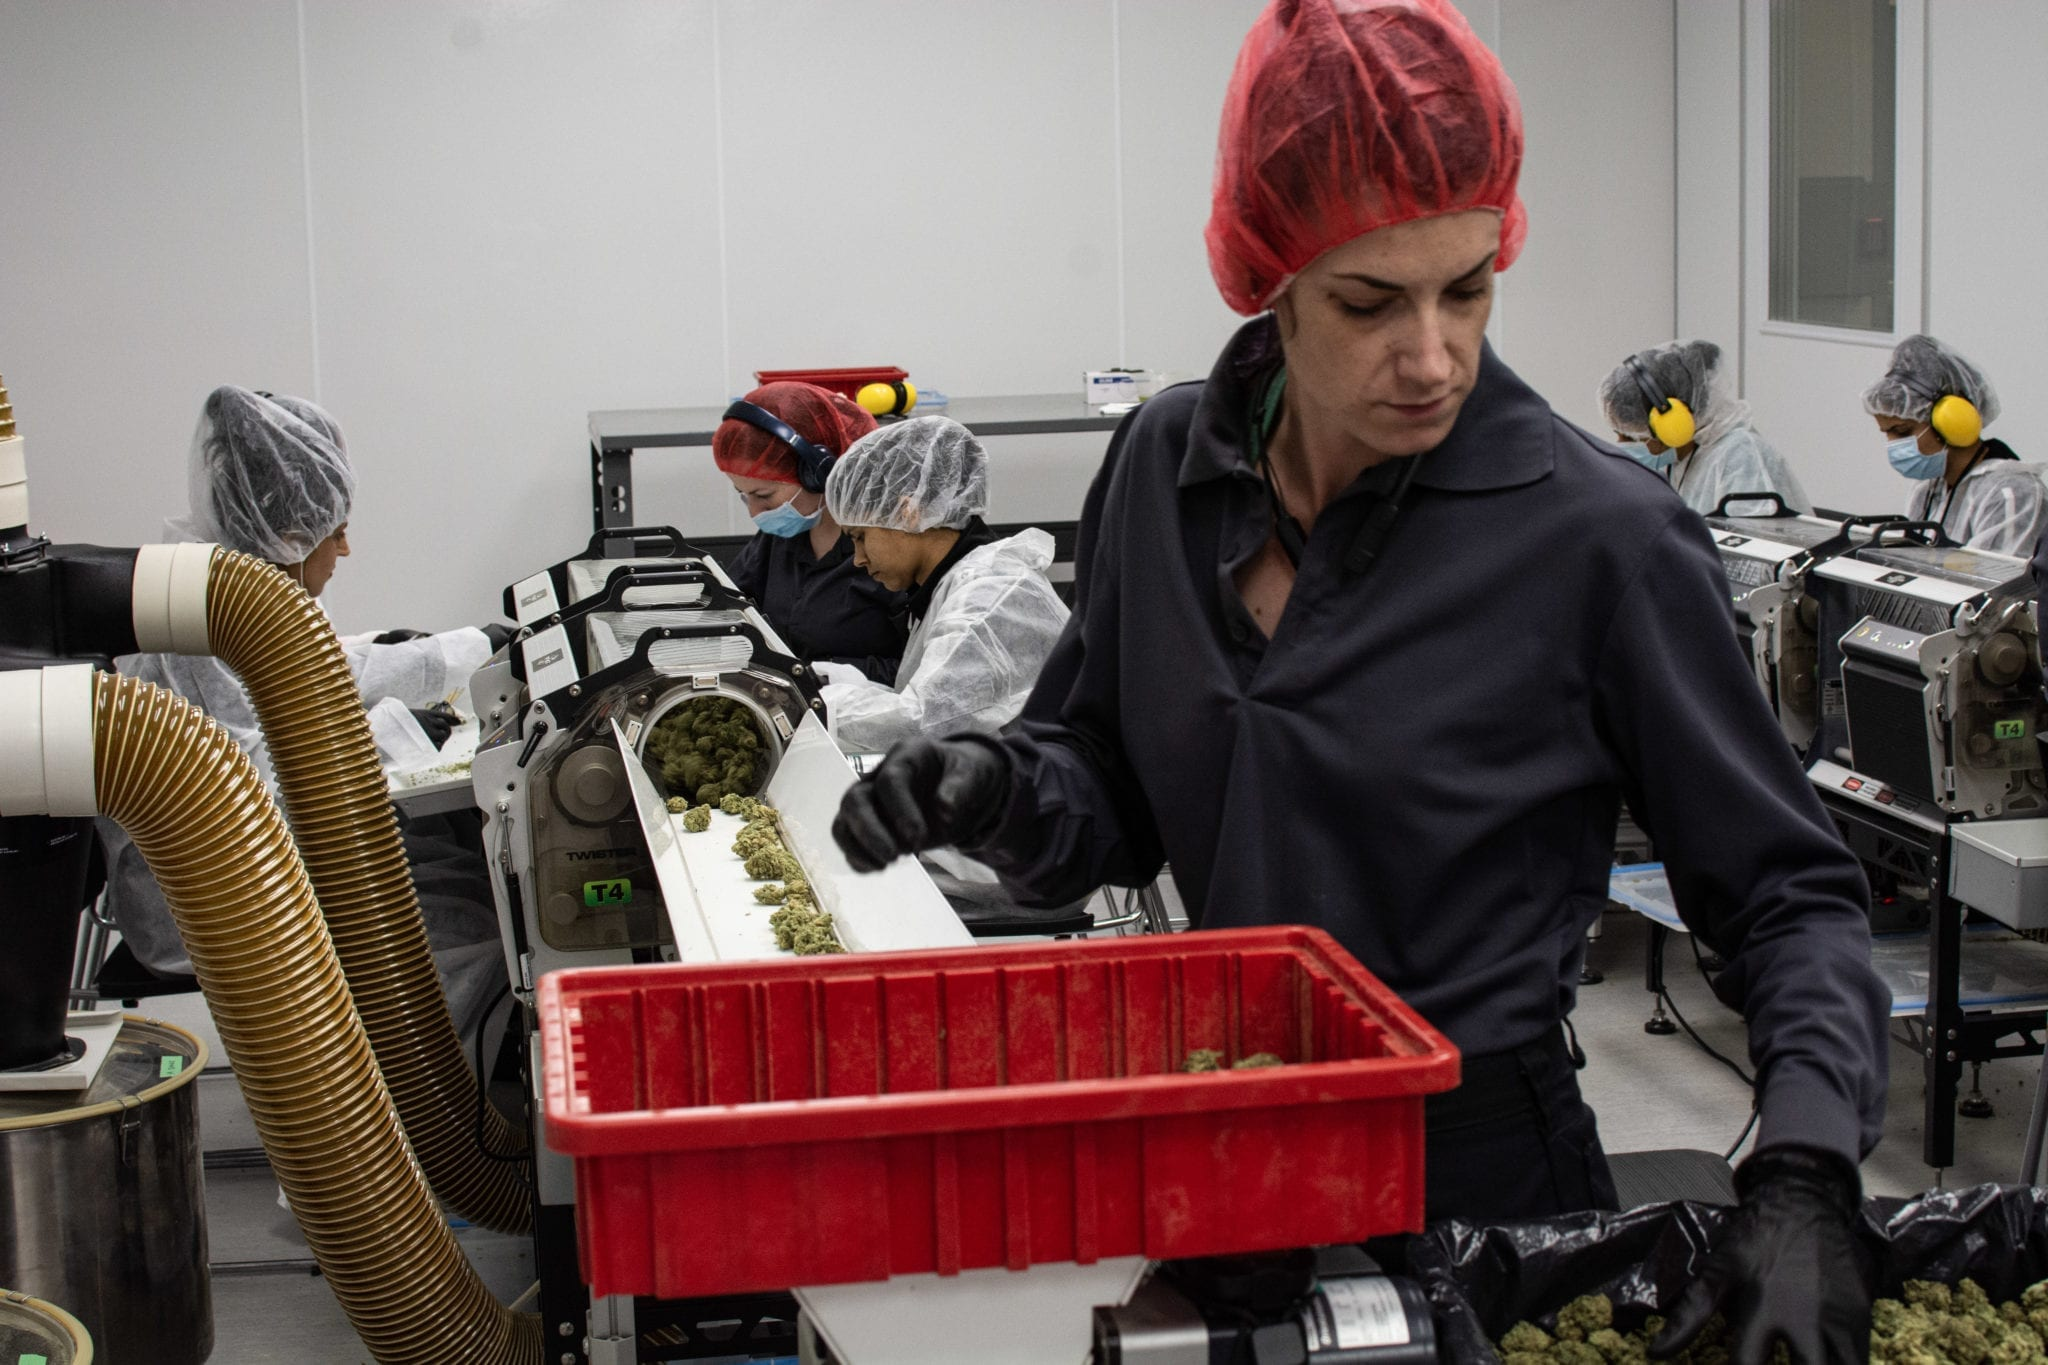 Opinion - If Canada is serious about job creation, it need only plant a cannabis seed